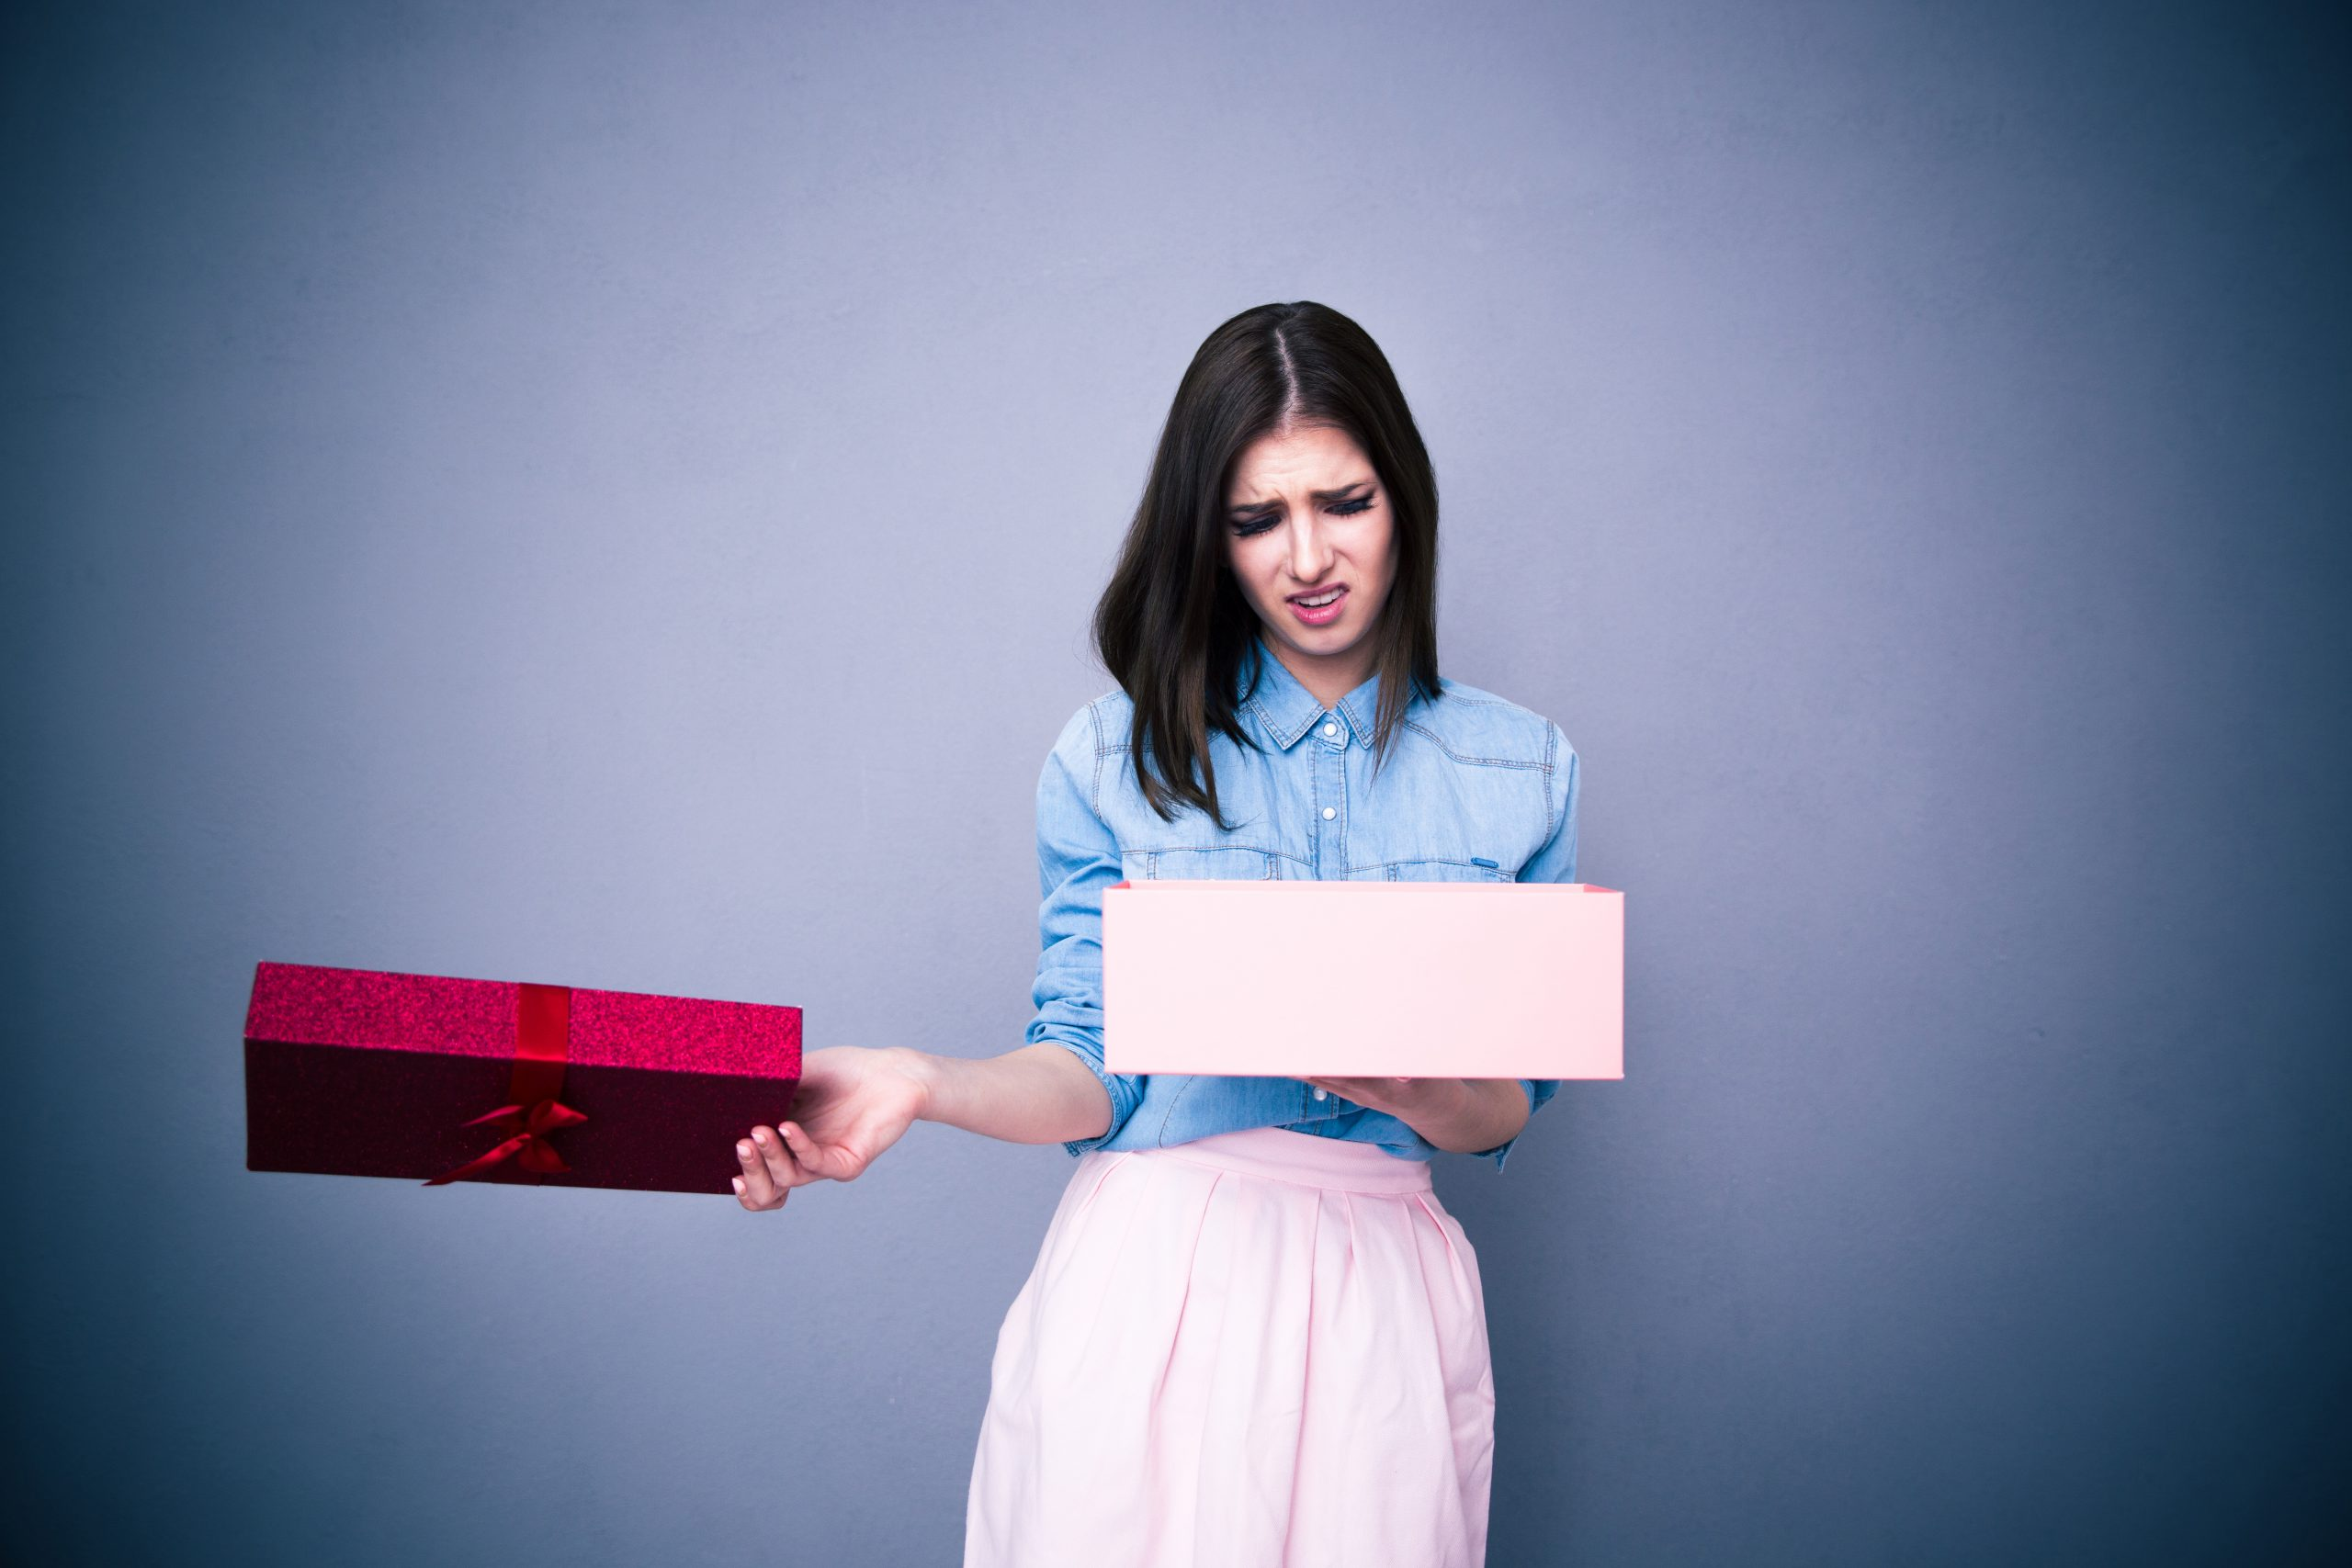 dissatisfied woman opening a gift